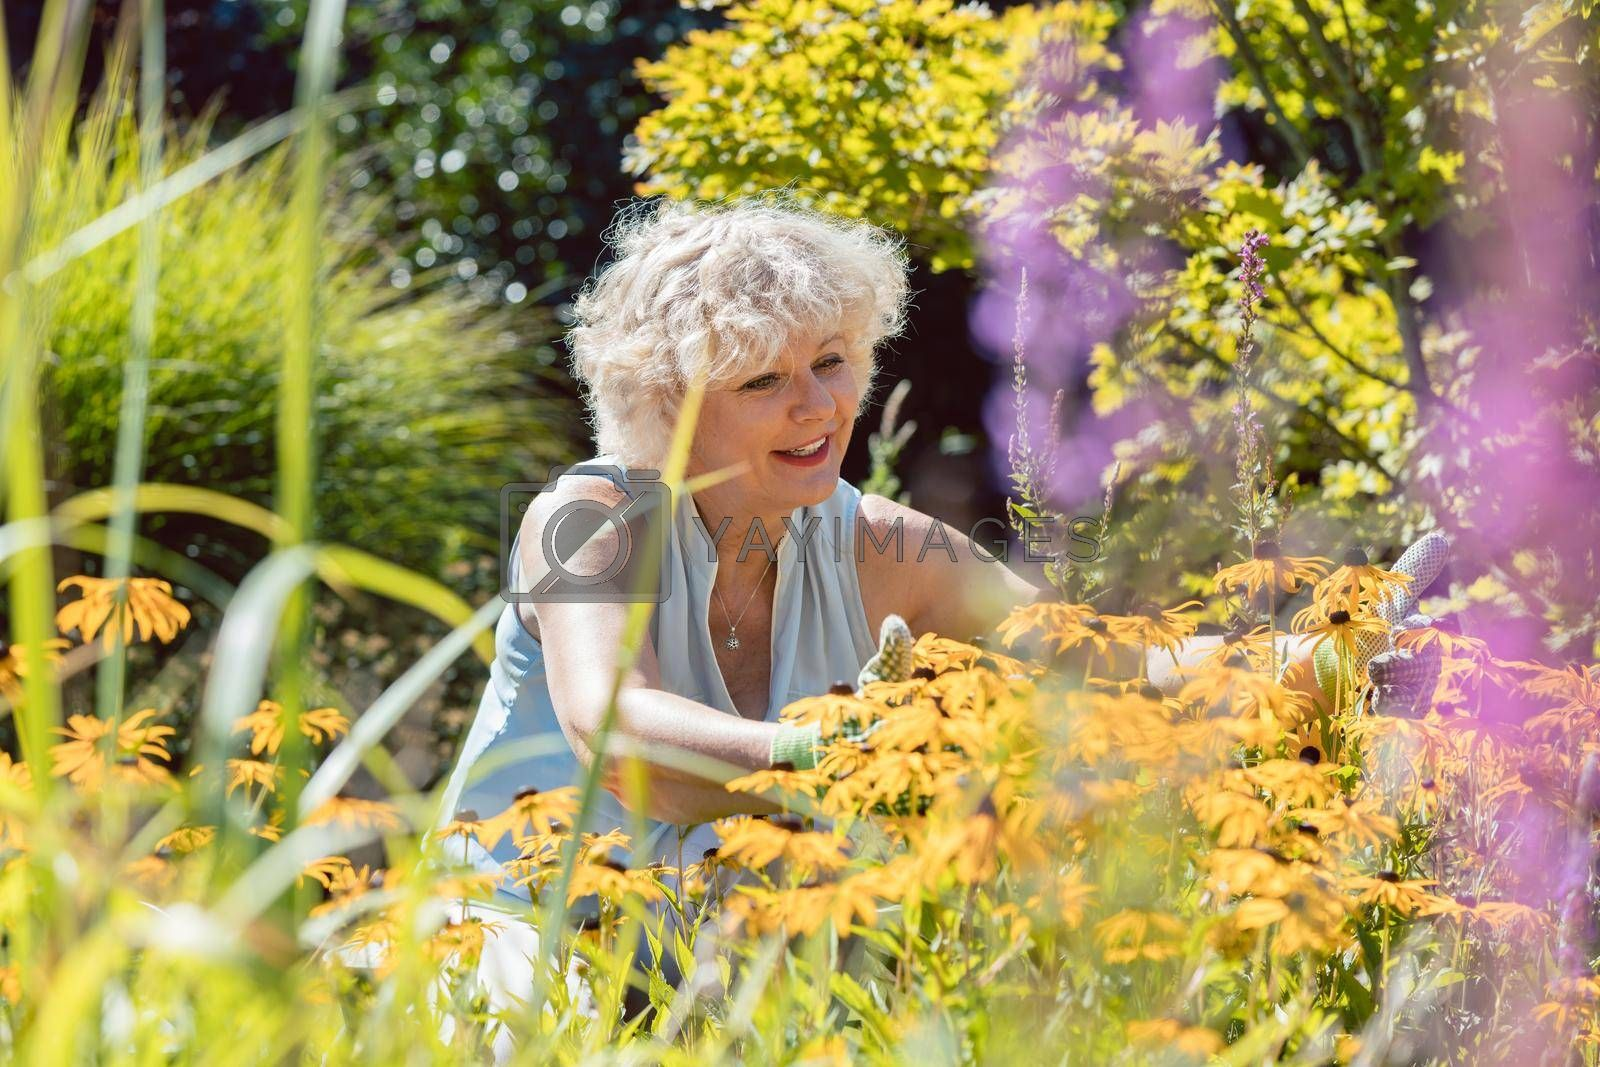 Royalty free image of Senior woman with an active lifestyle enjoying retirement with garden work by Kzenon